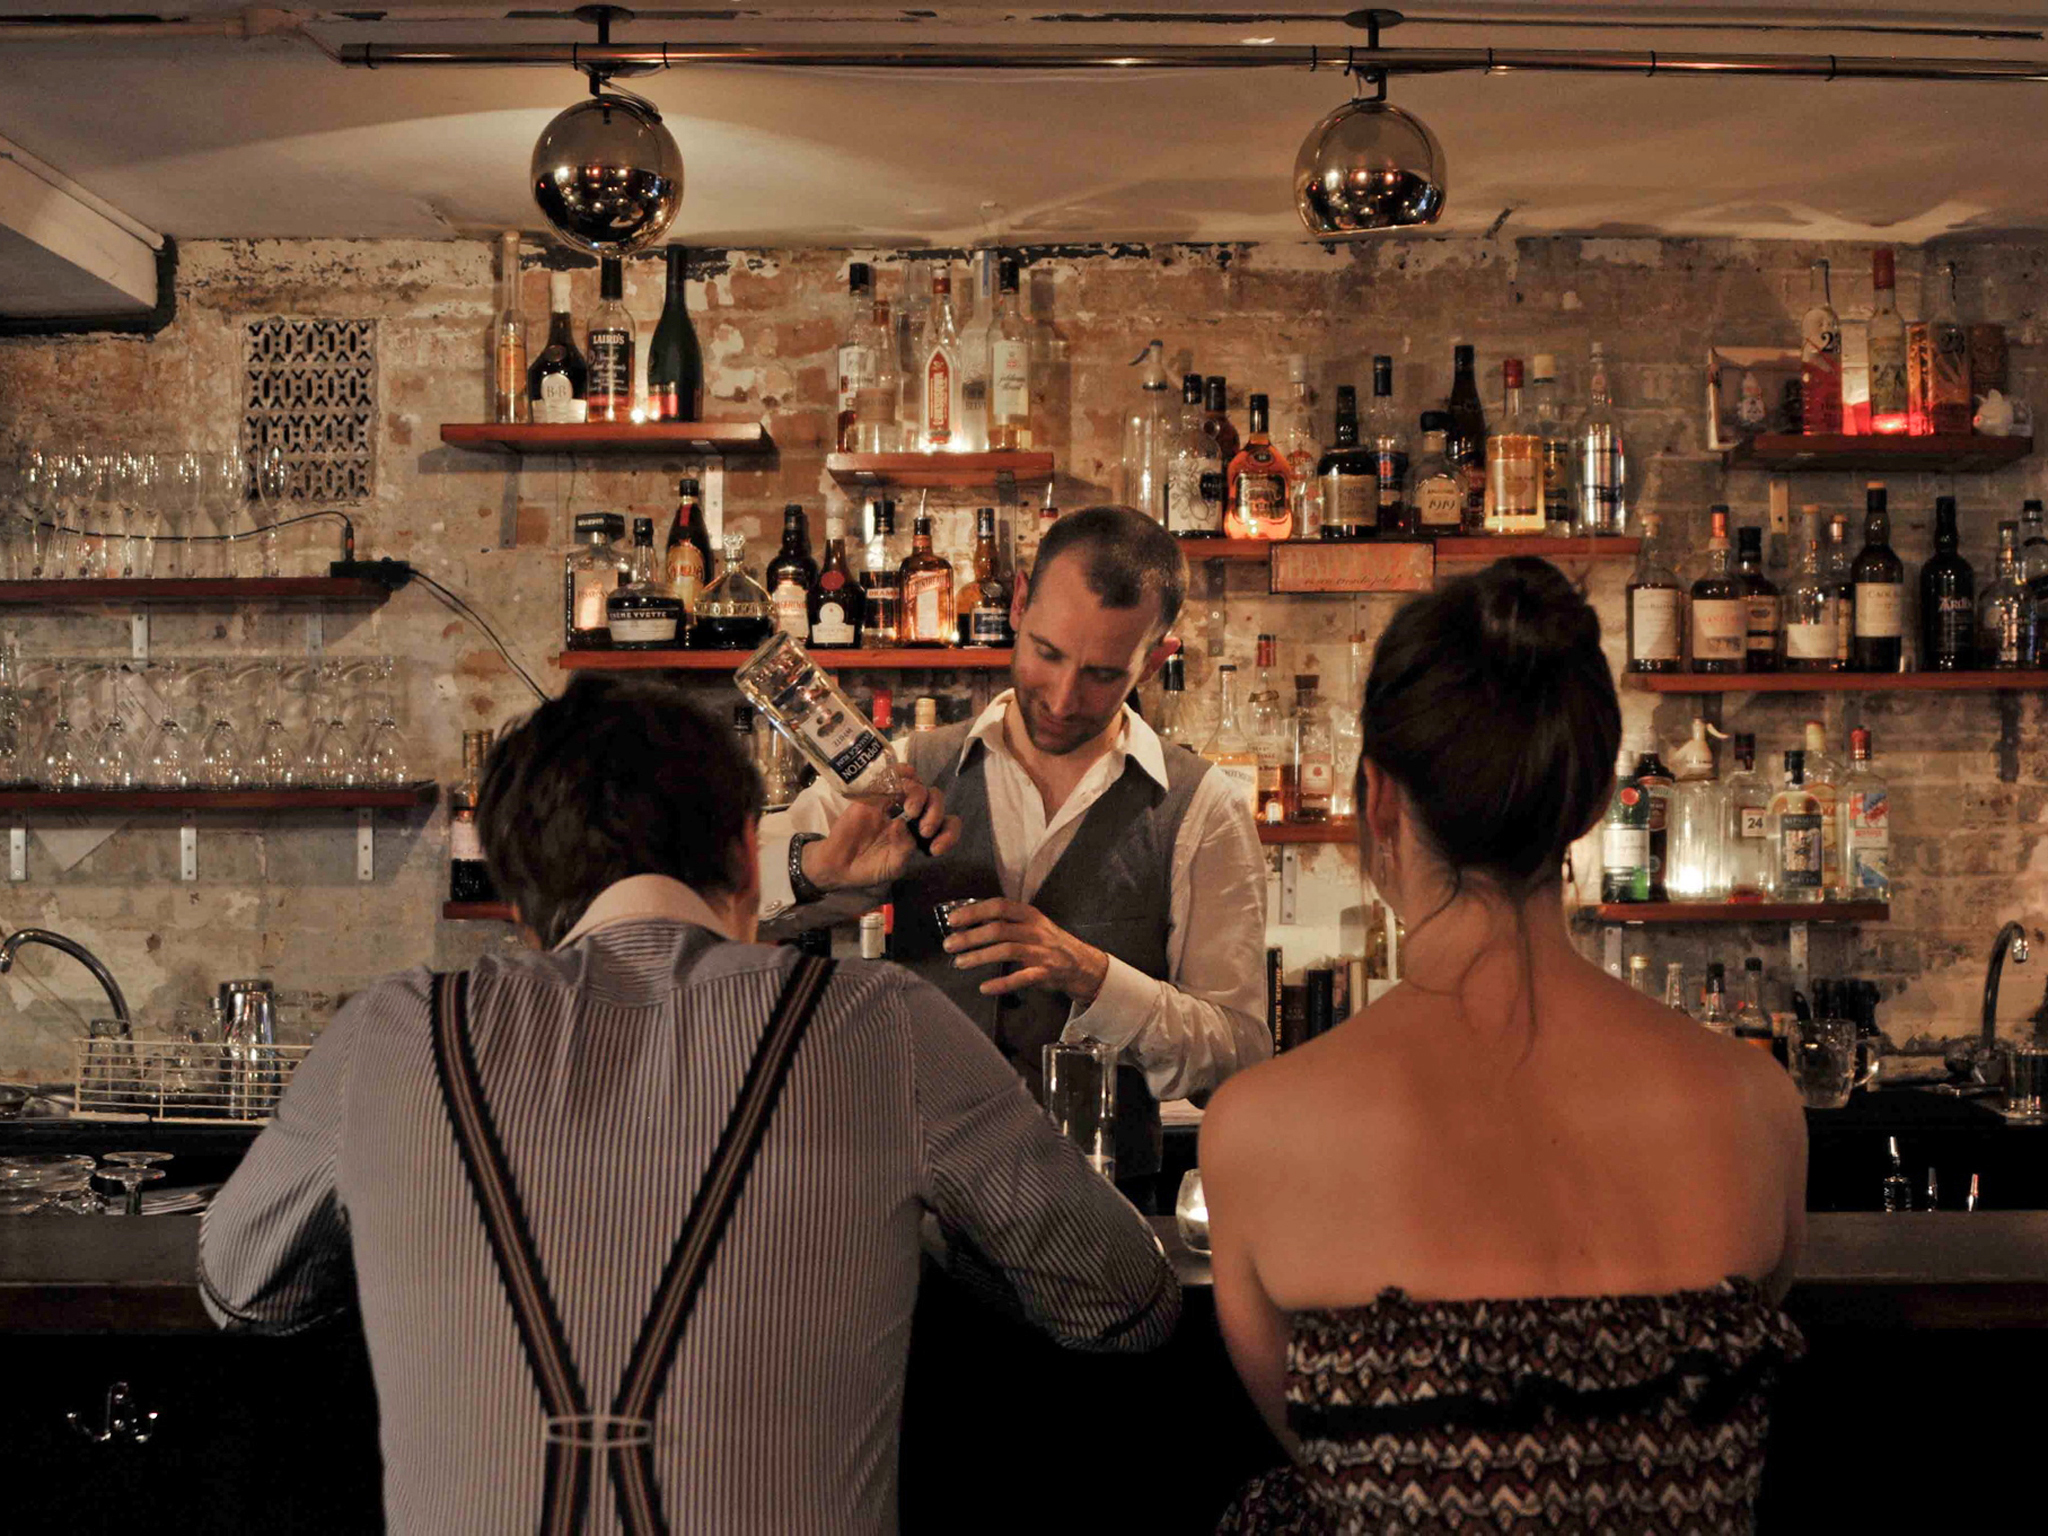 The 50 best cocktail bars in London, Happiness Forgets